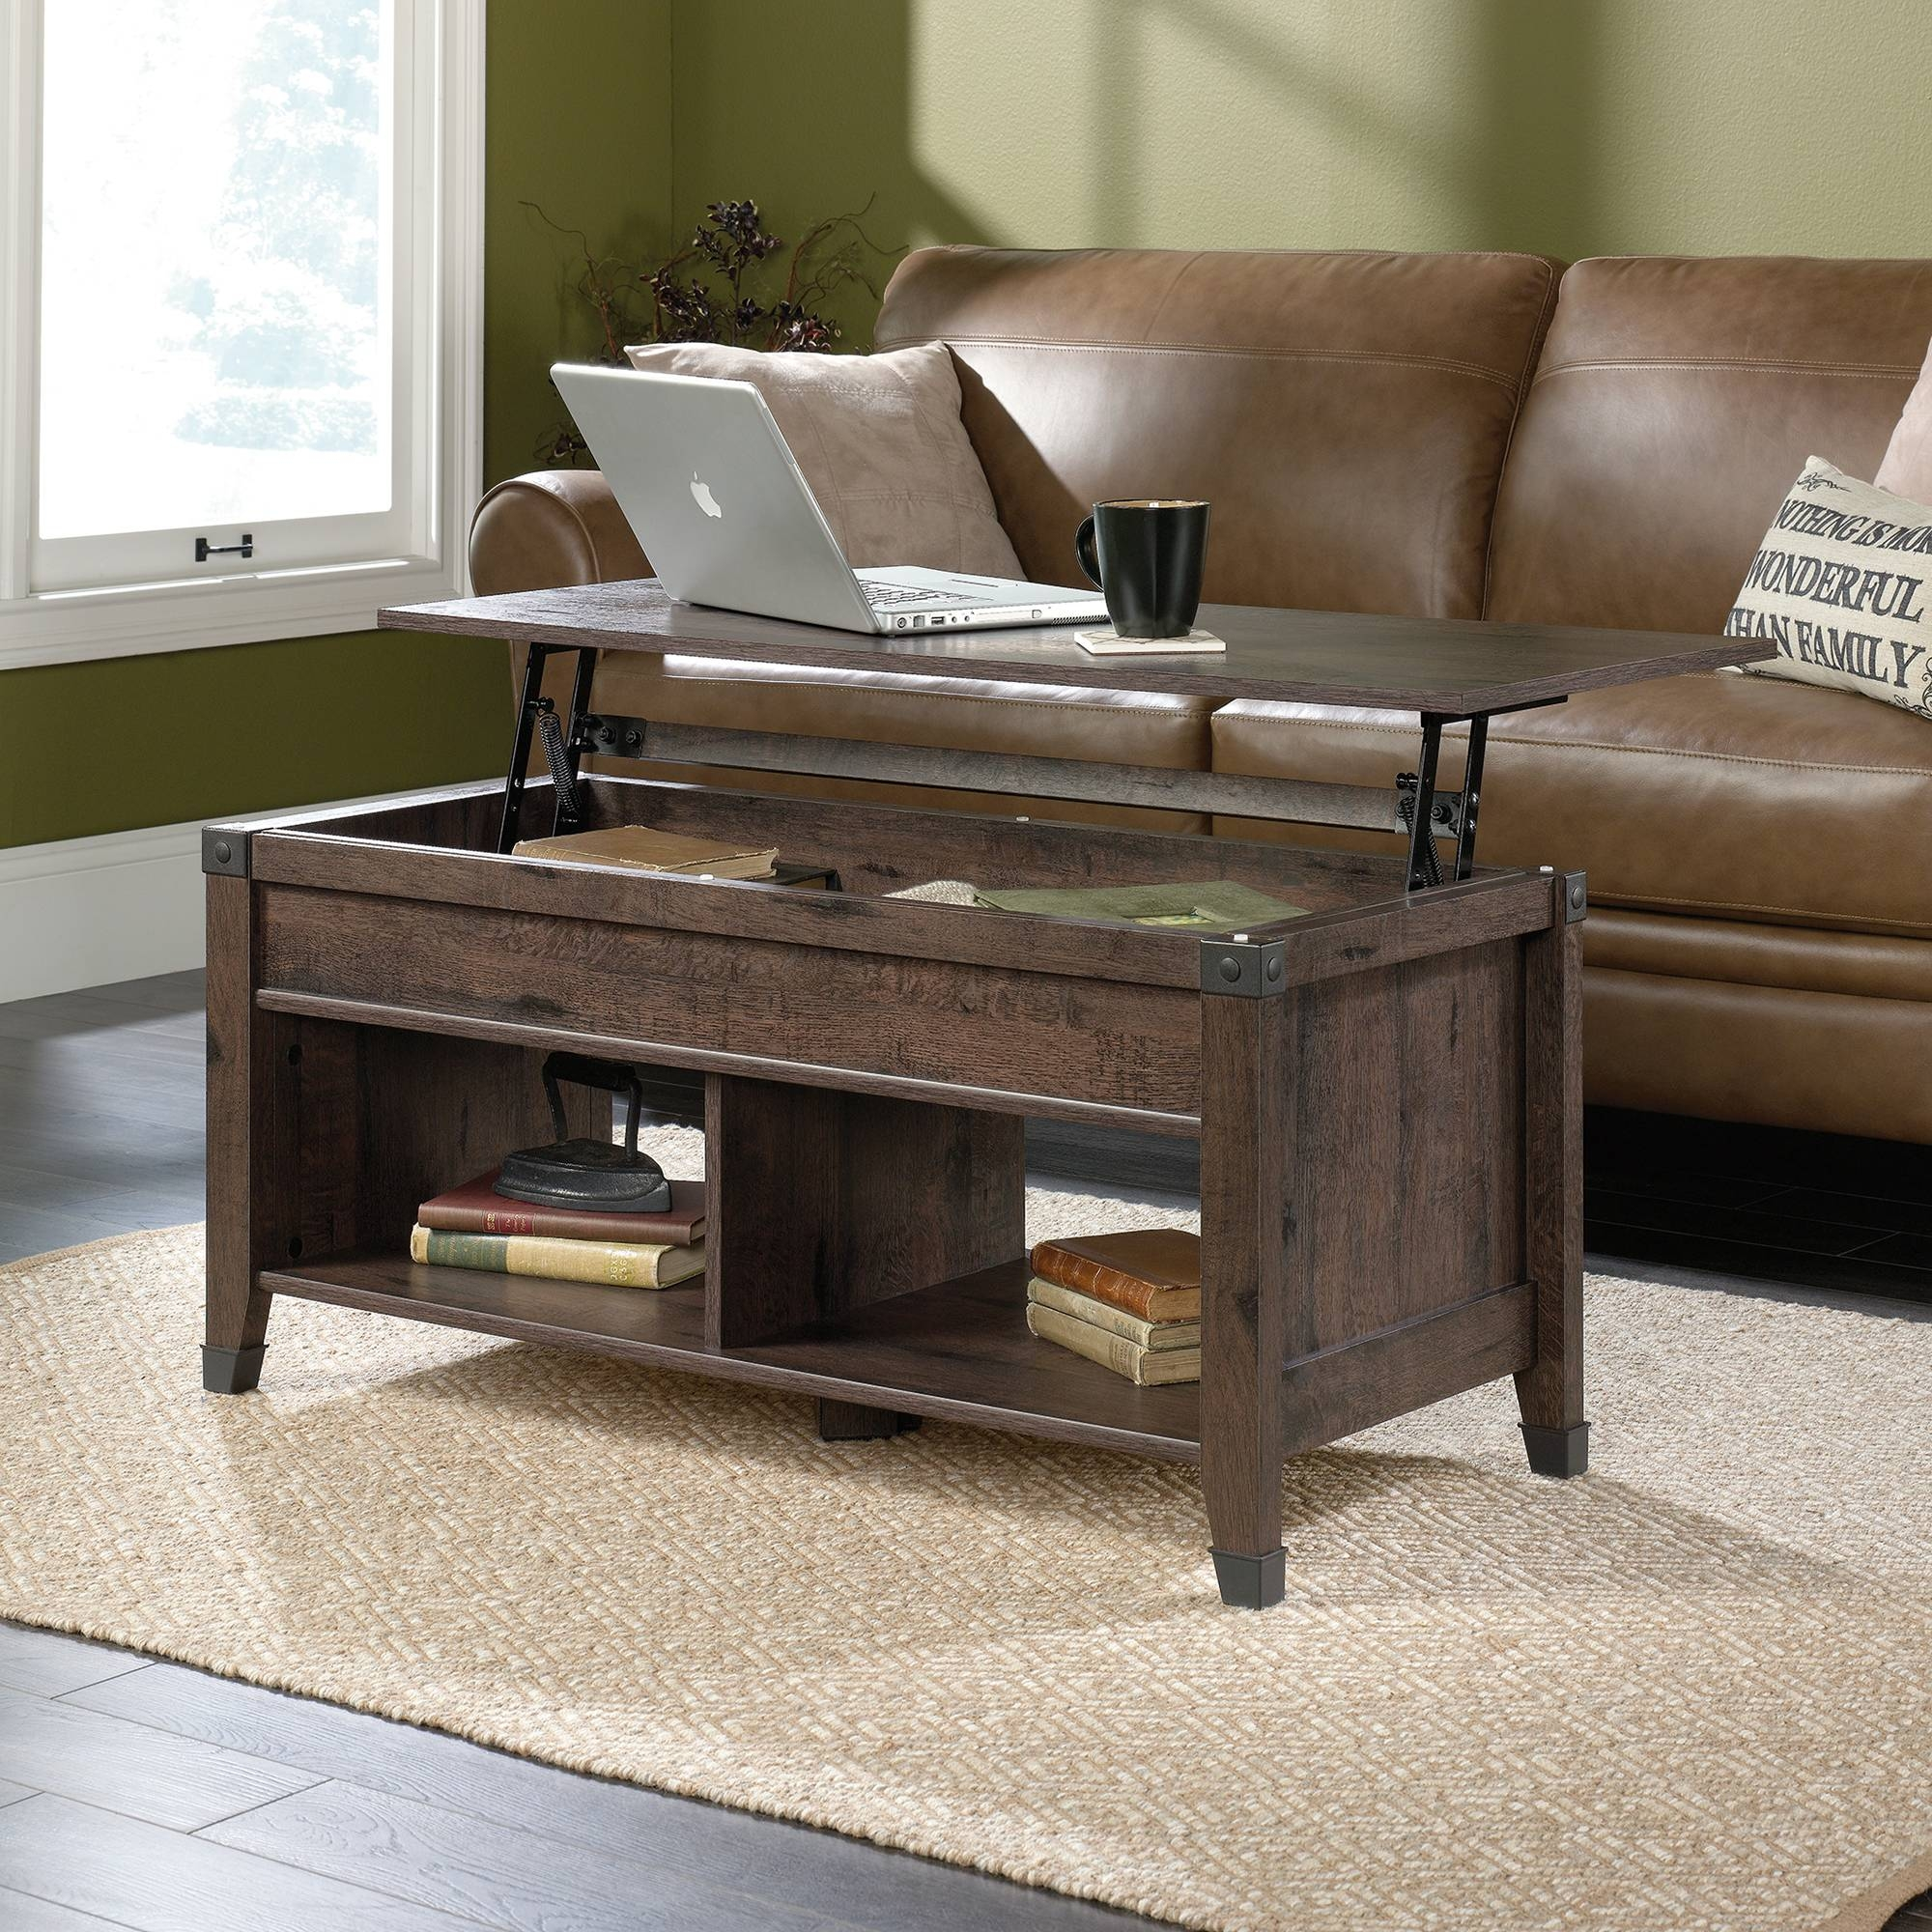 Carson Forge | Lift-Top Coffee Table | 420421 | Sauder inside Coffee Tables Top Lifts Up (Image 4 of 30)